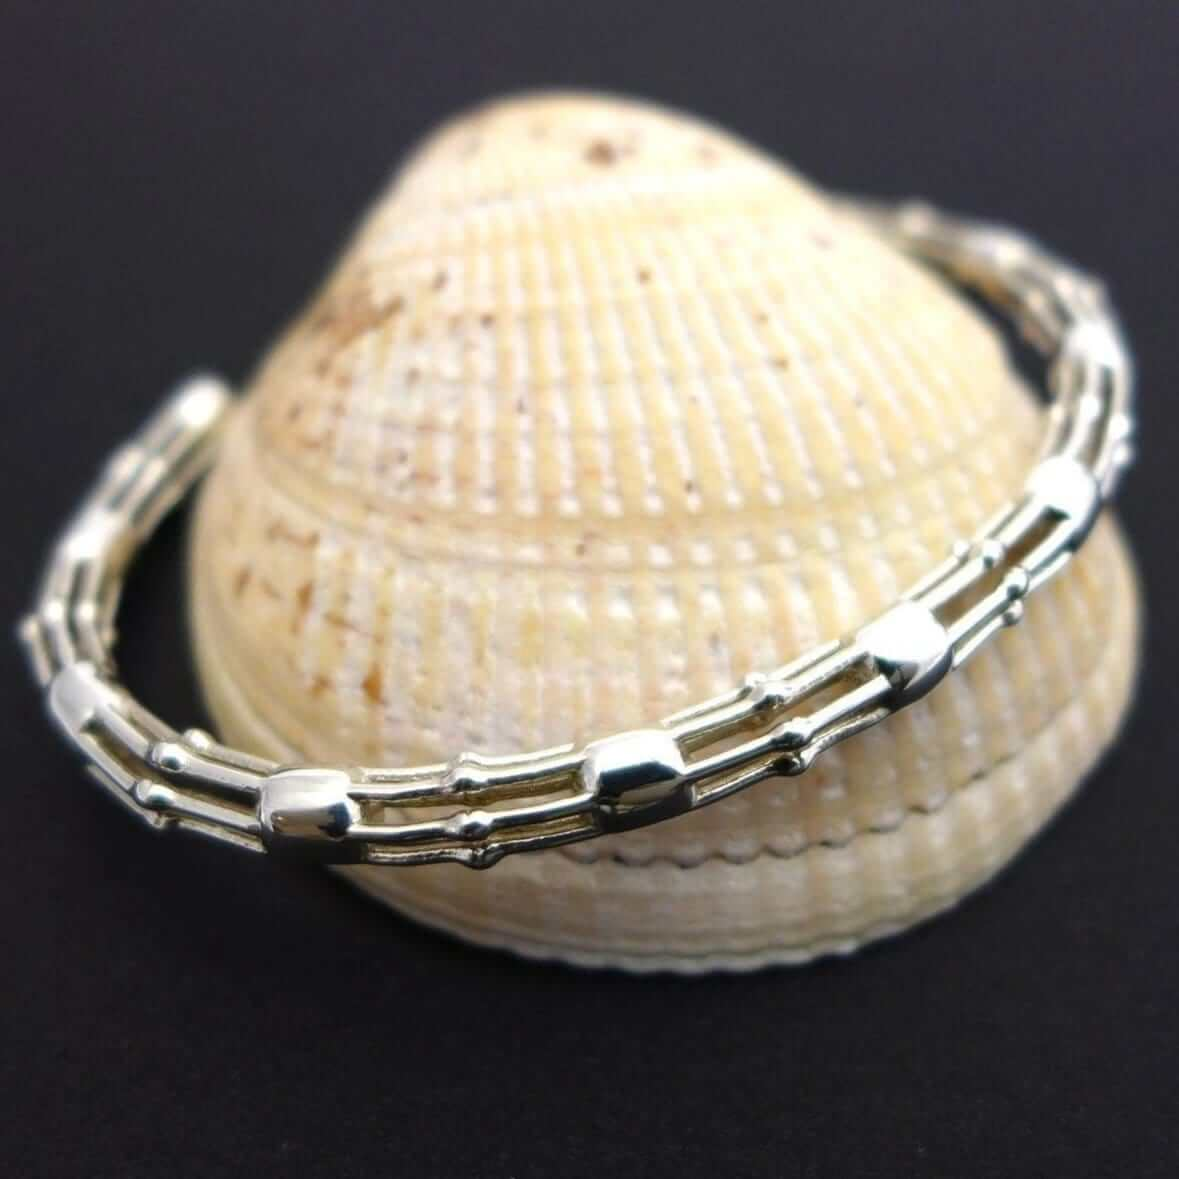 Skeletonema Bracelet in solid sterling silver_Diatom Jewelry